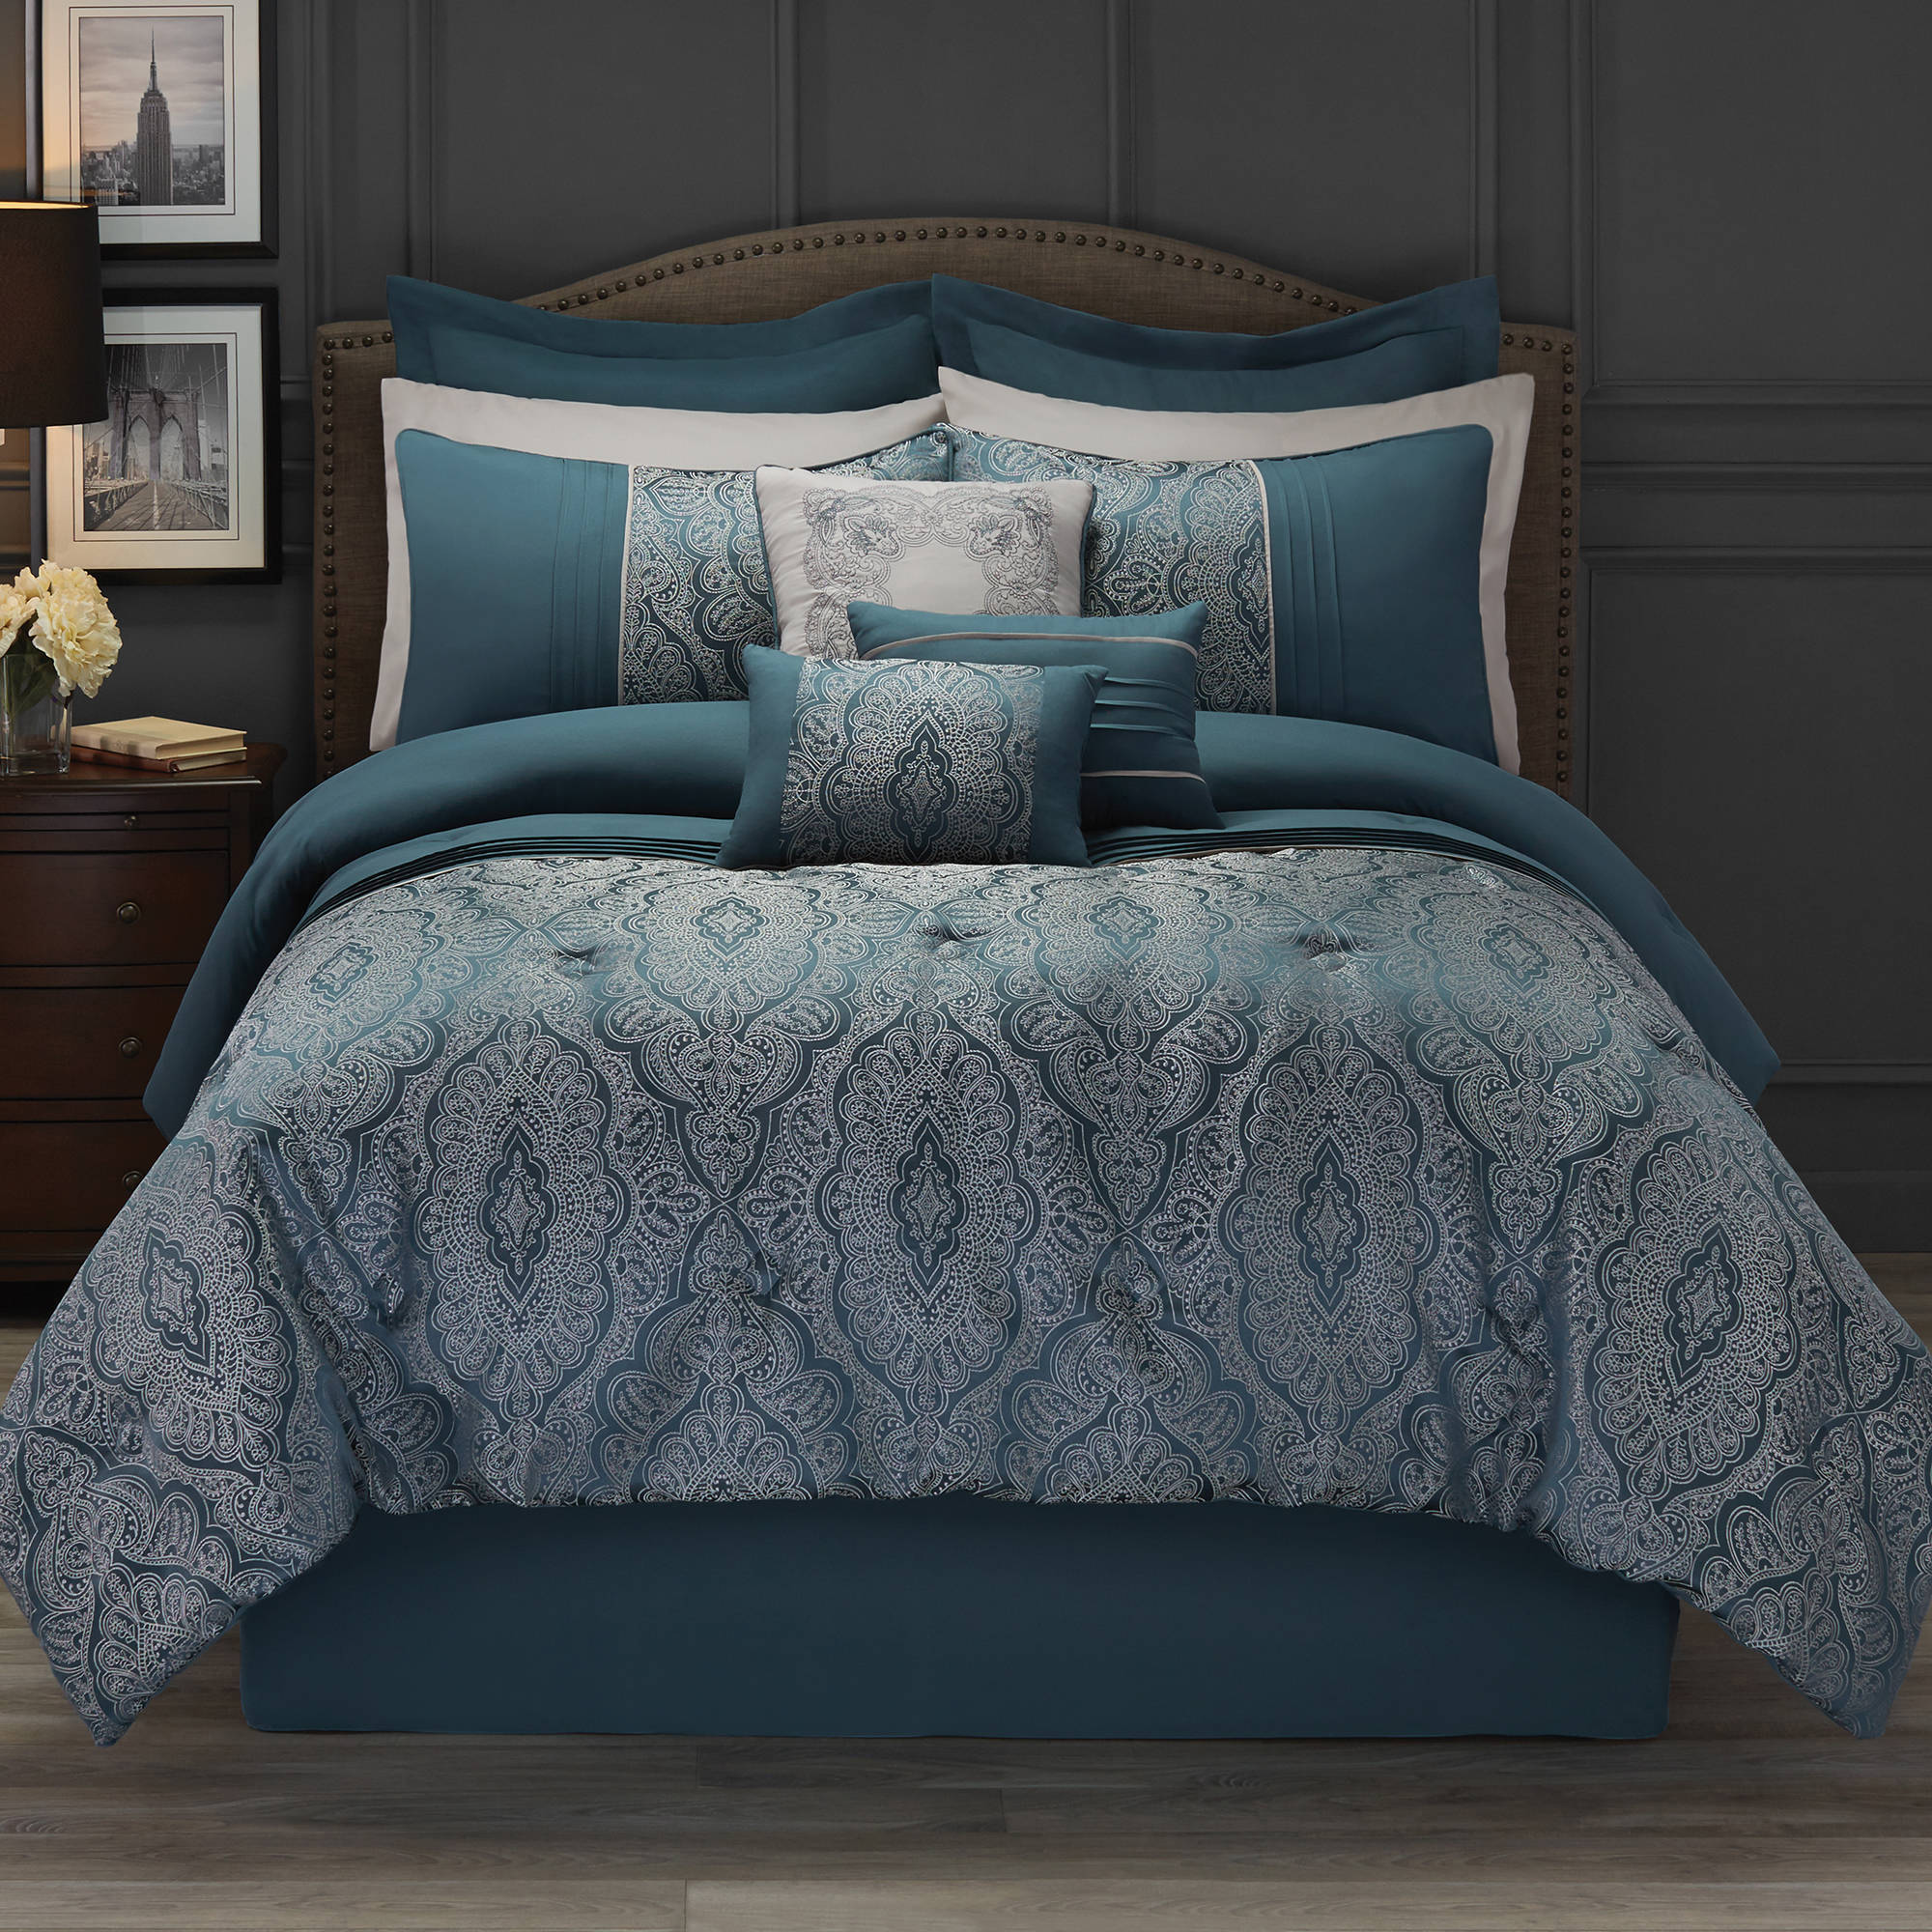 Hotel Style 11 Piece Bedding Comforter Set Collection